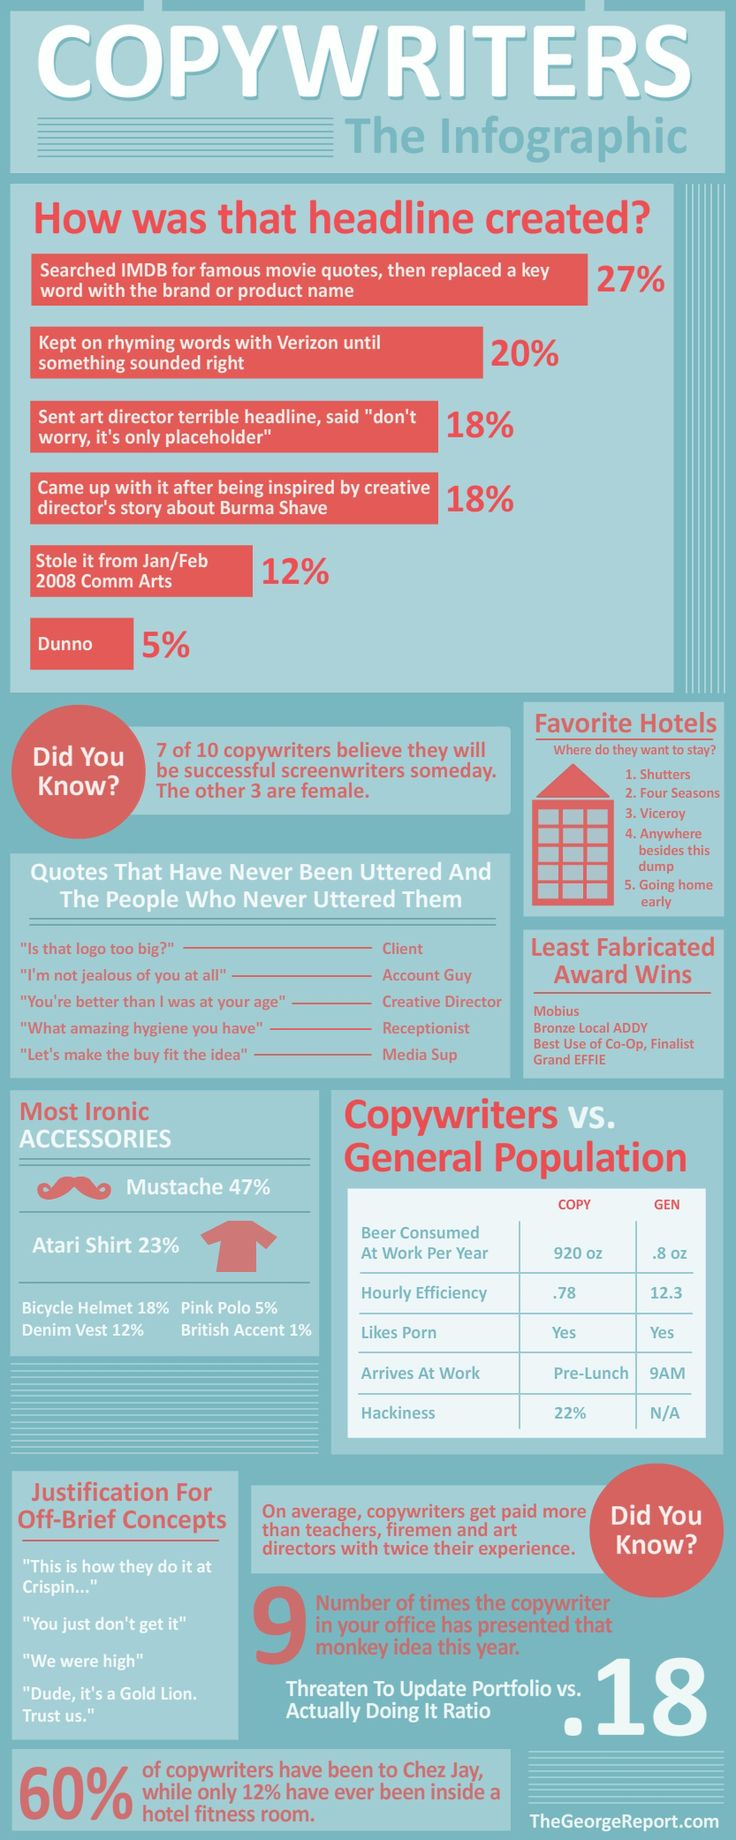 63 best copywriting images on pinterest imaginative writing tips copywriters the infographic fandeluxe Image collections